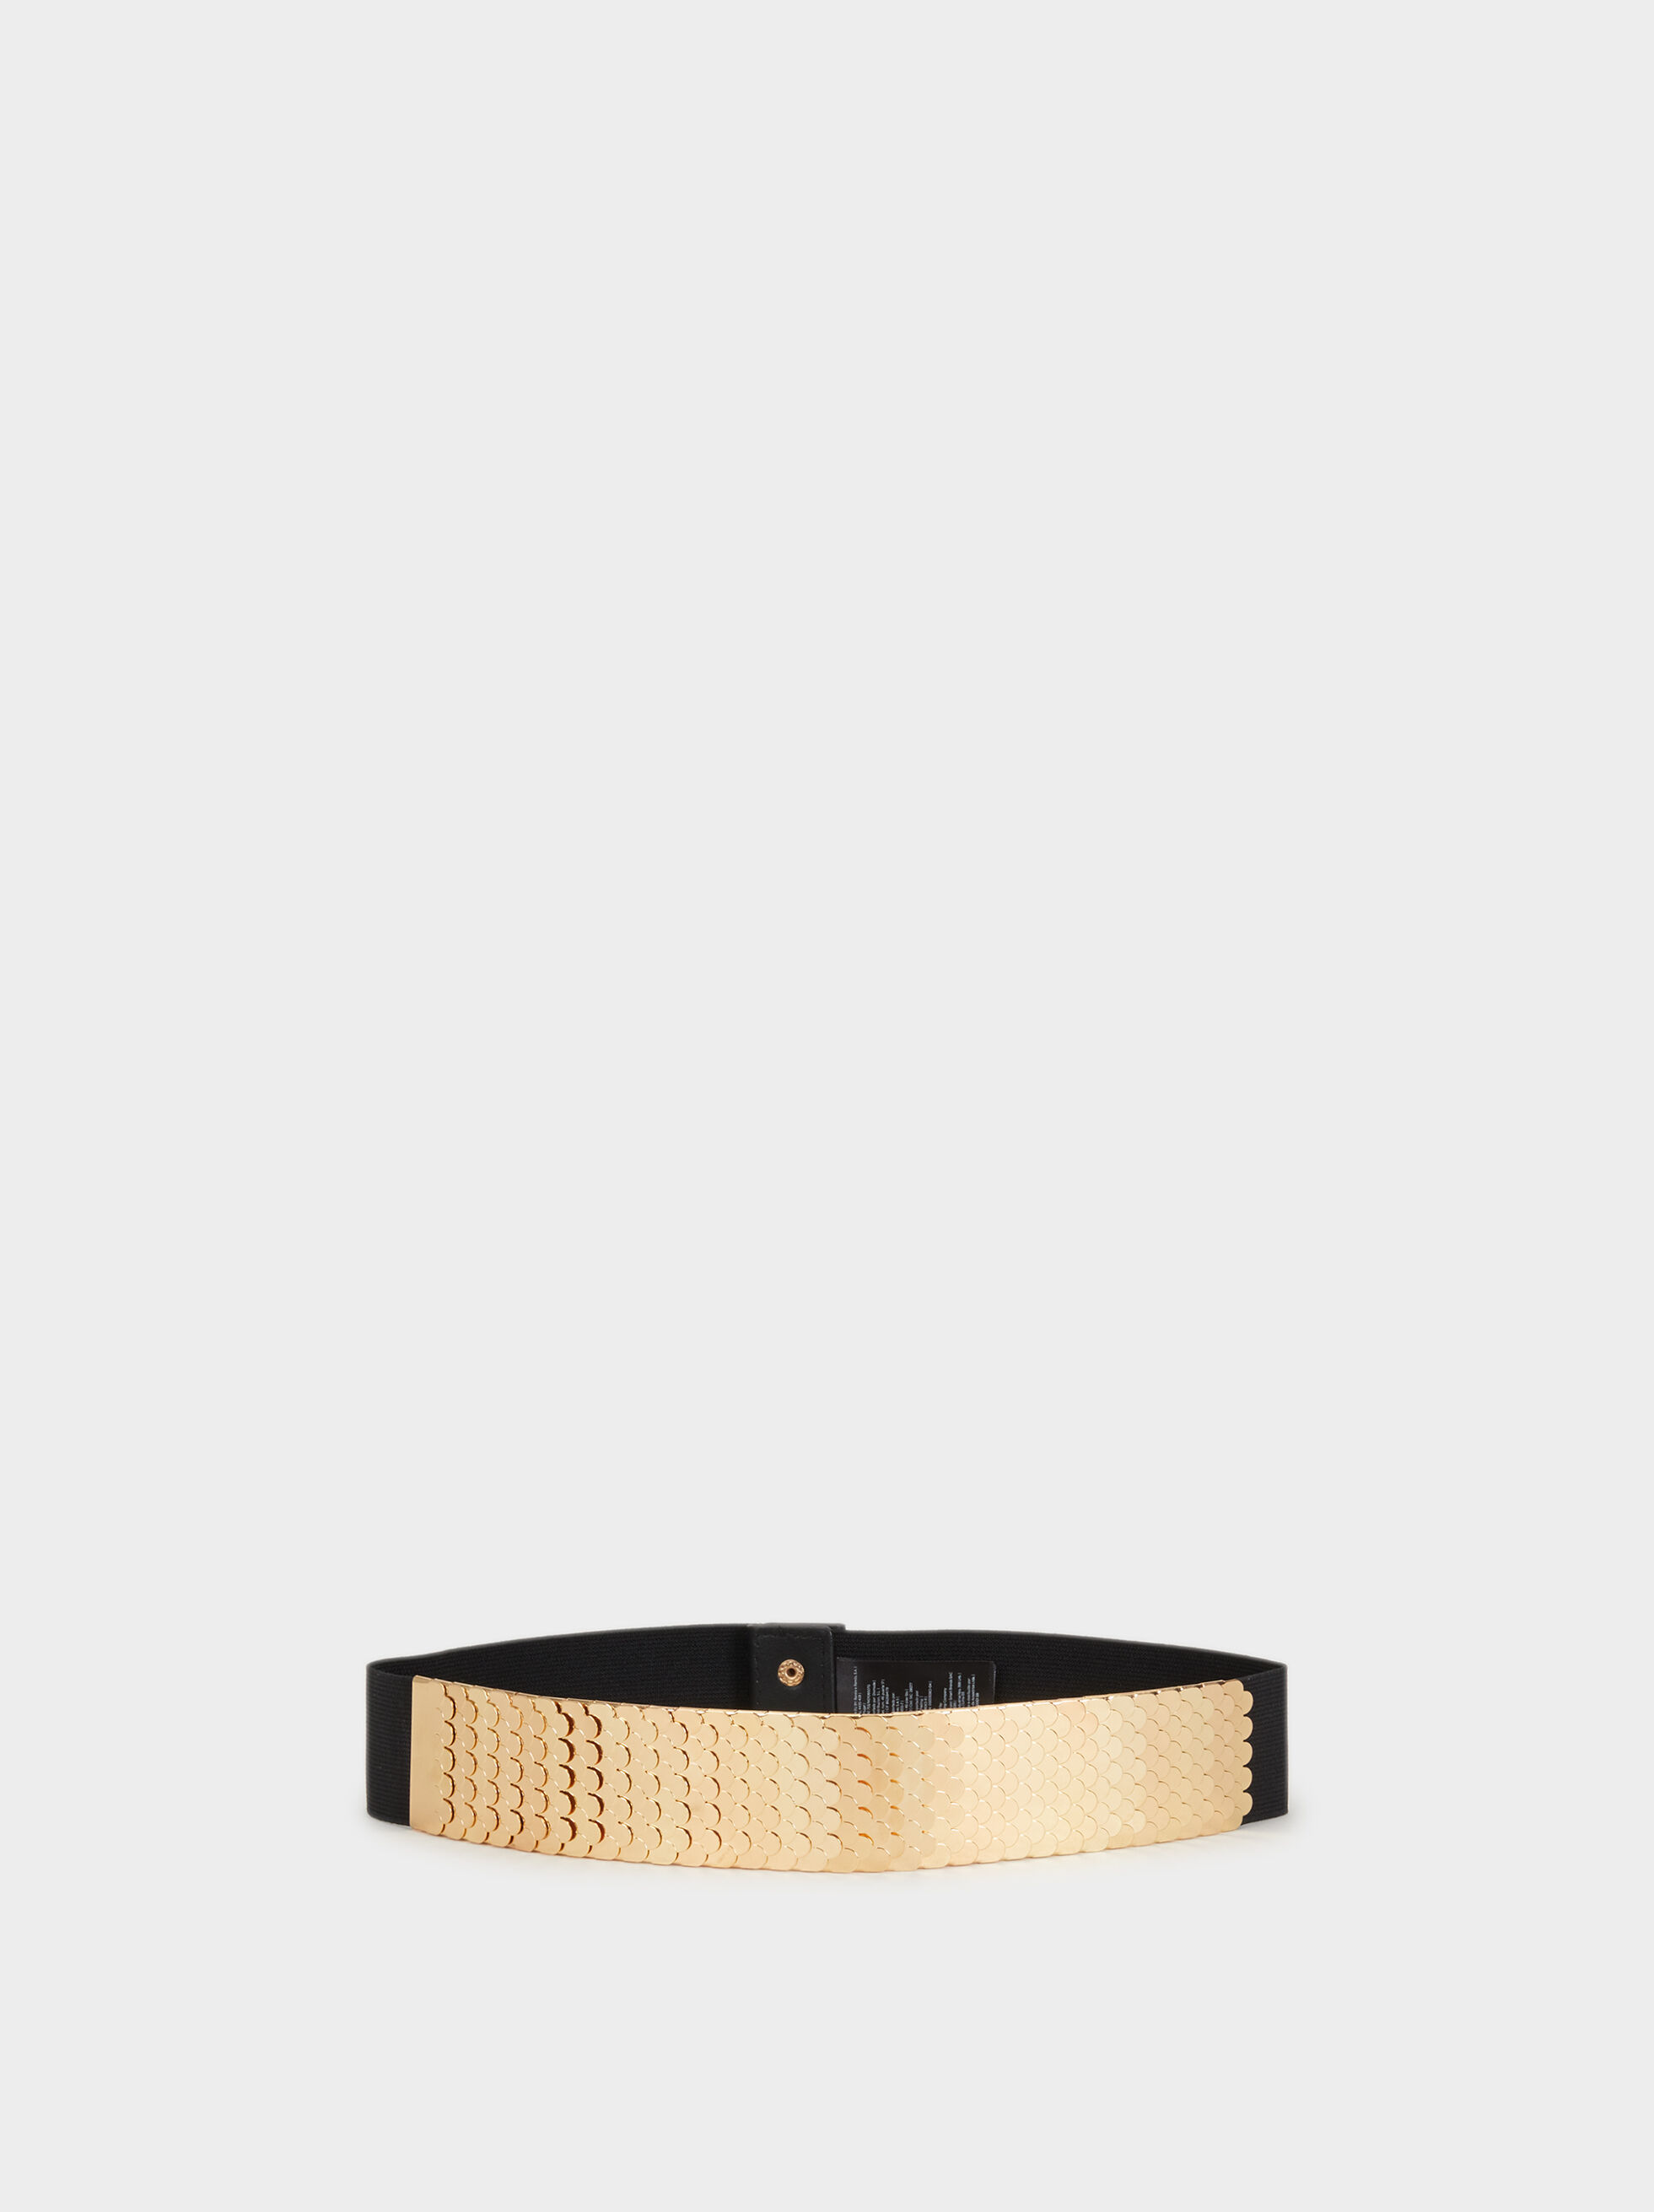 Stretch Belt With Metal Appliqué, Golden, hi-res